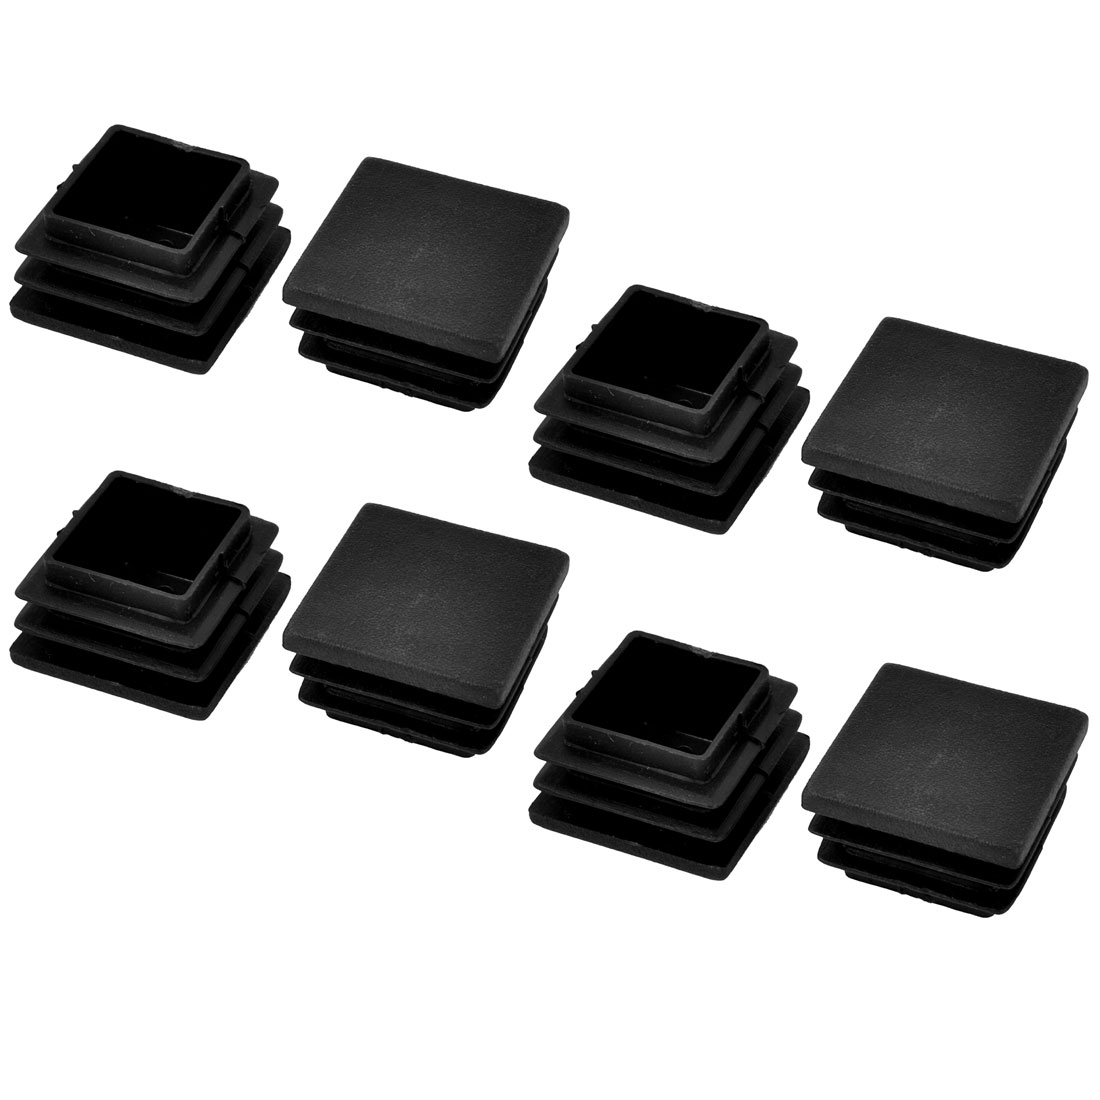 8 Pcs Black Square Blanking End Caps Tubing Tube Inserts 30mm x 30mm